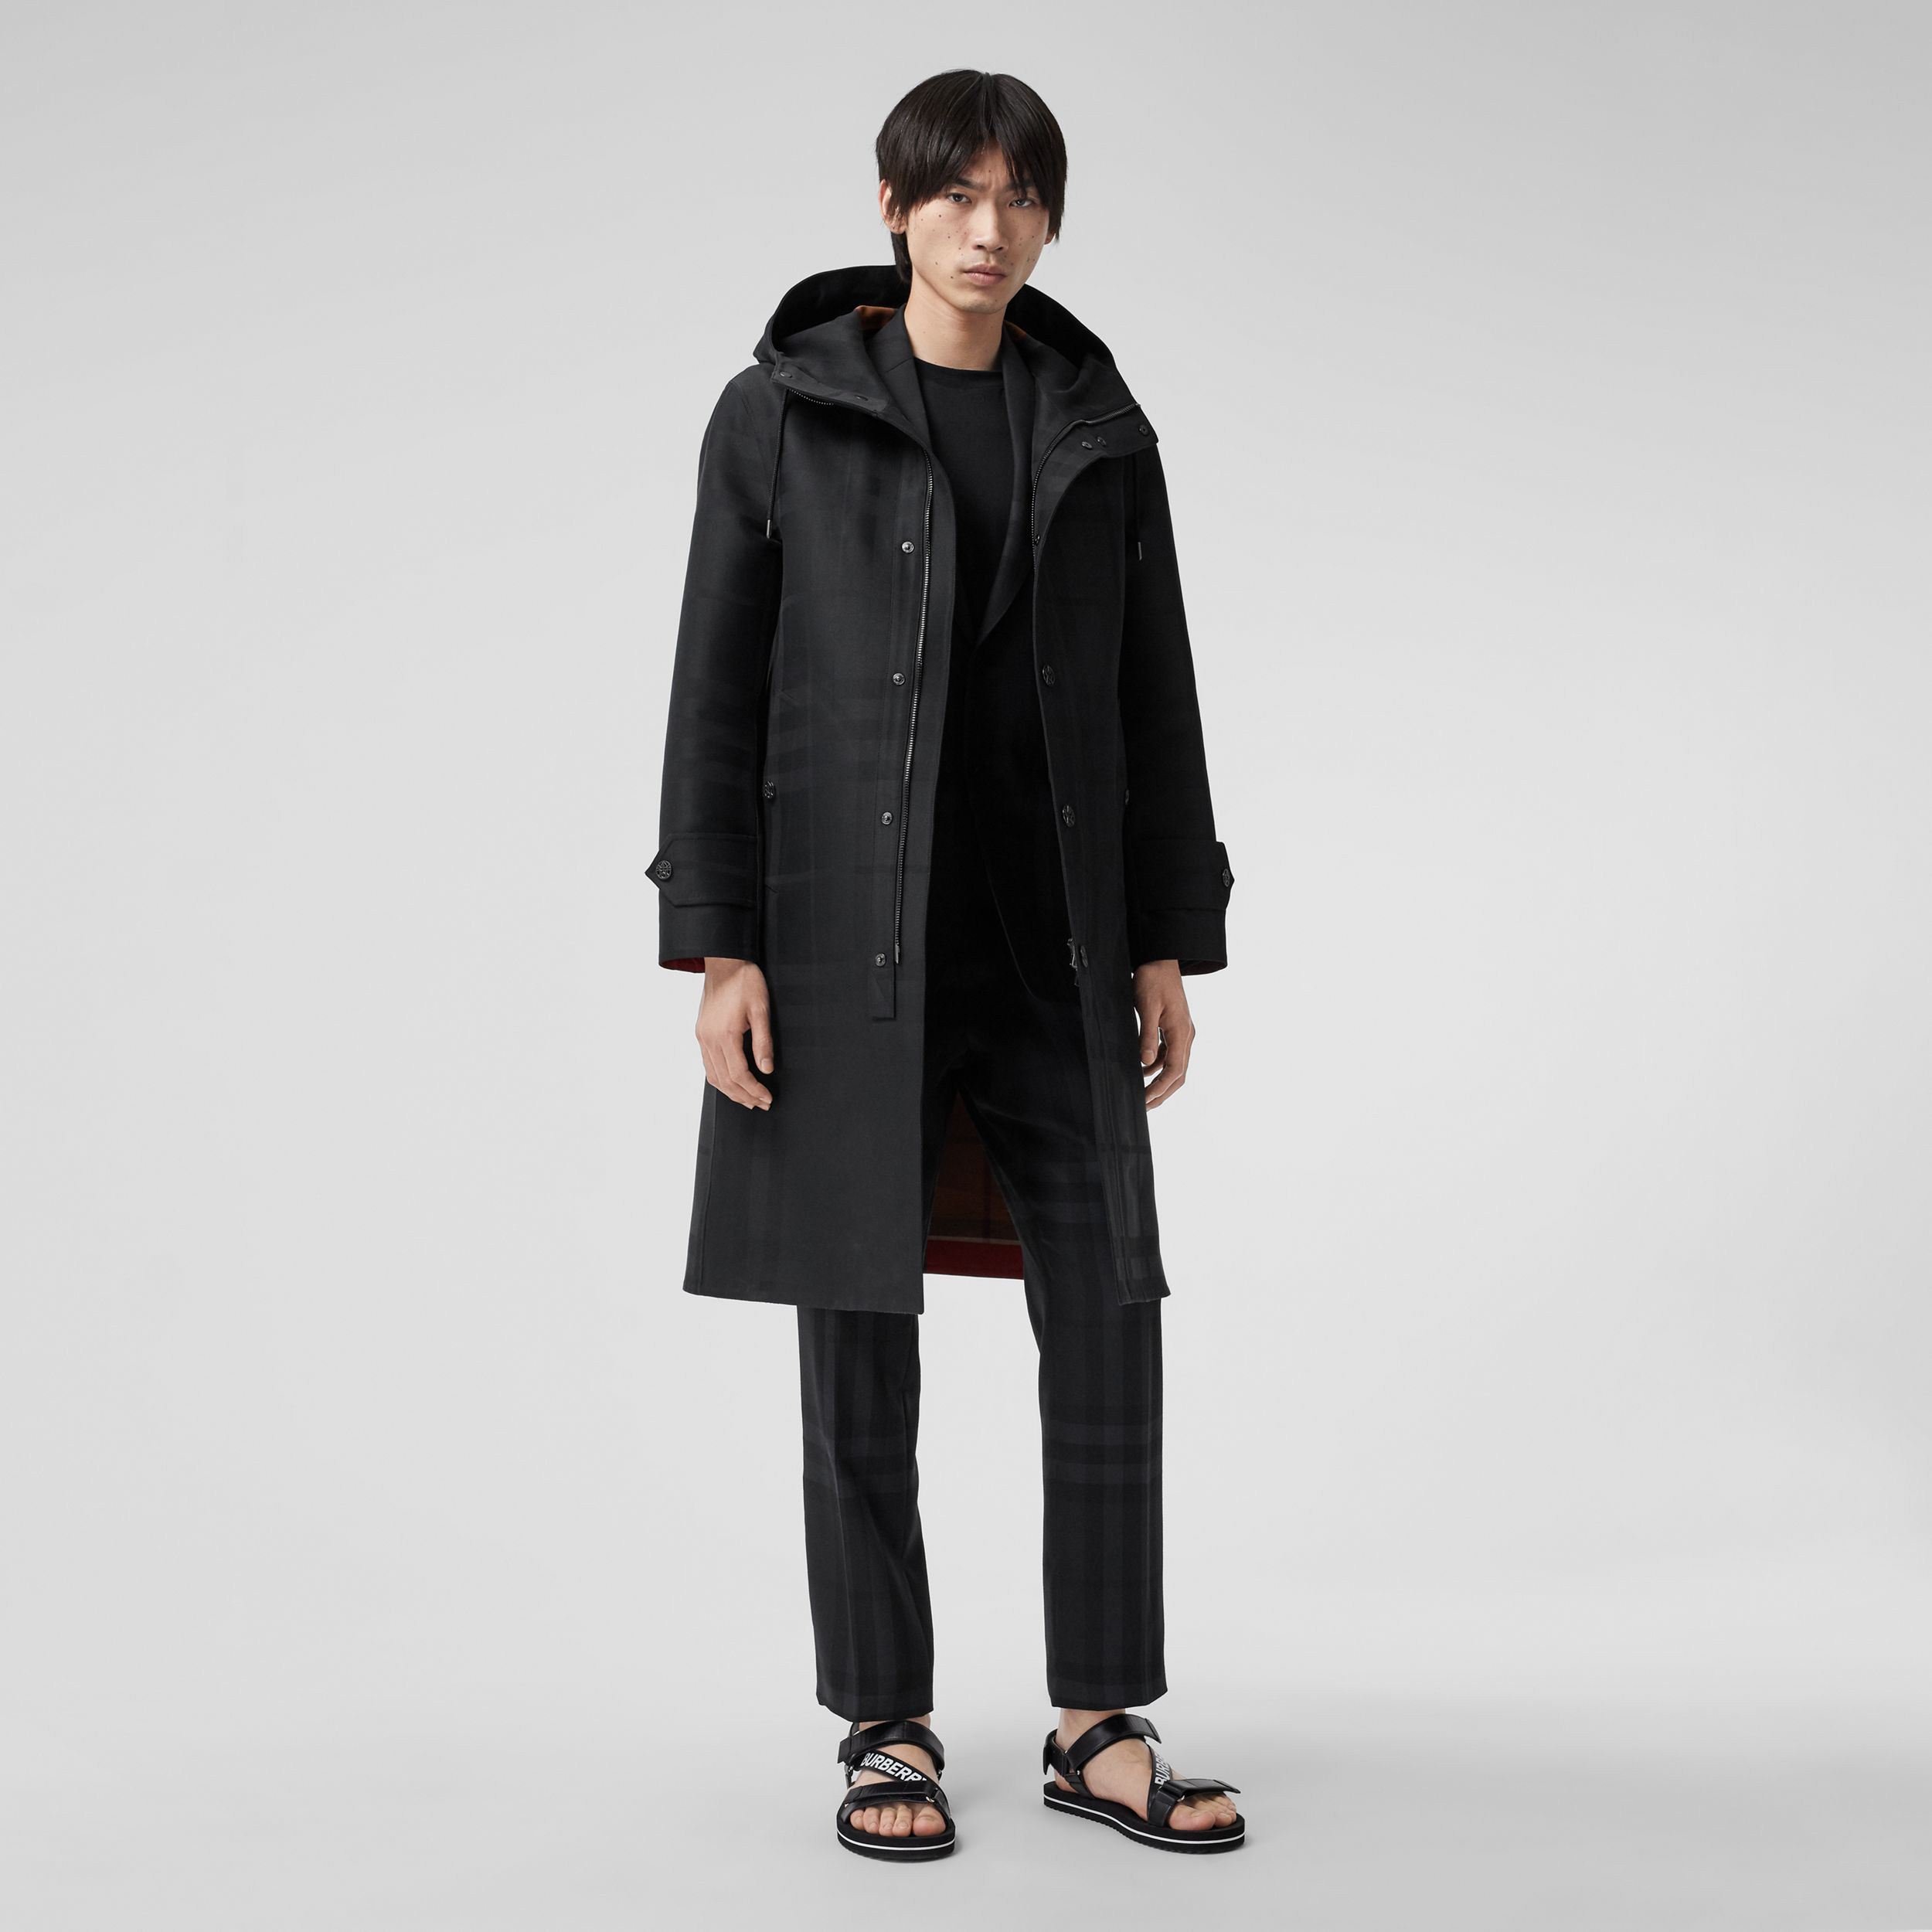 Globe Graphic Detail Check Technical Cotton Coat in Black - Men | Burberry - 1